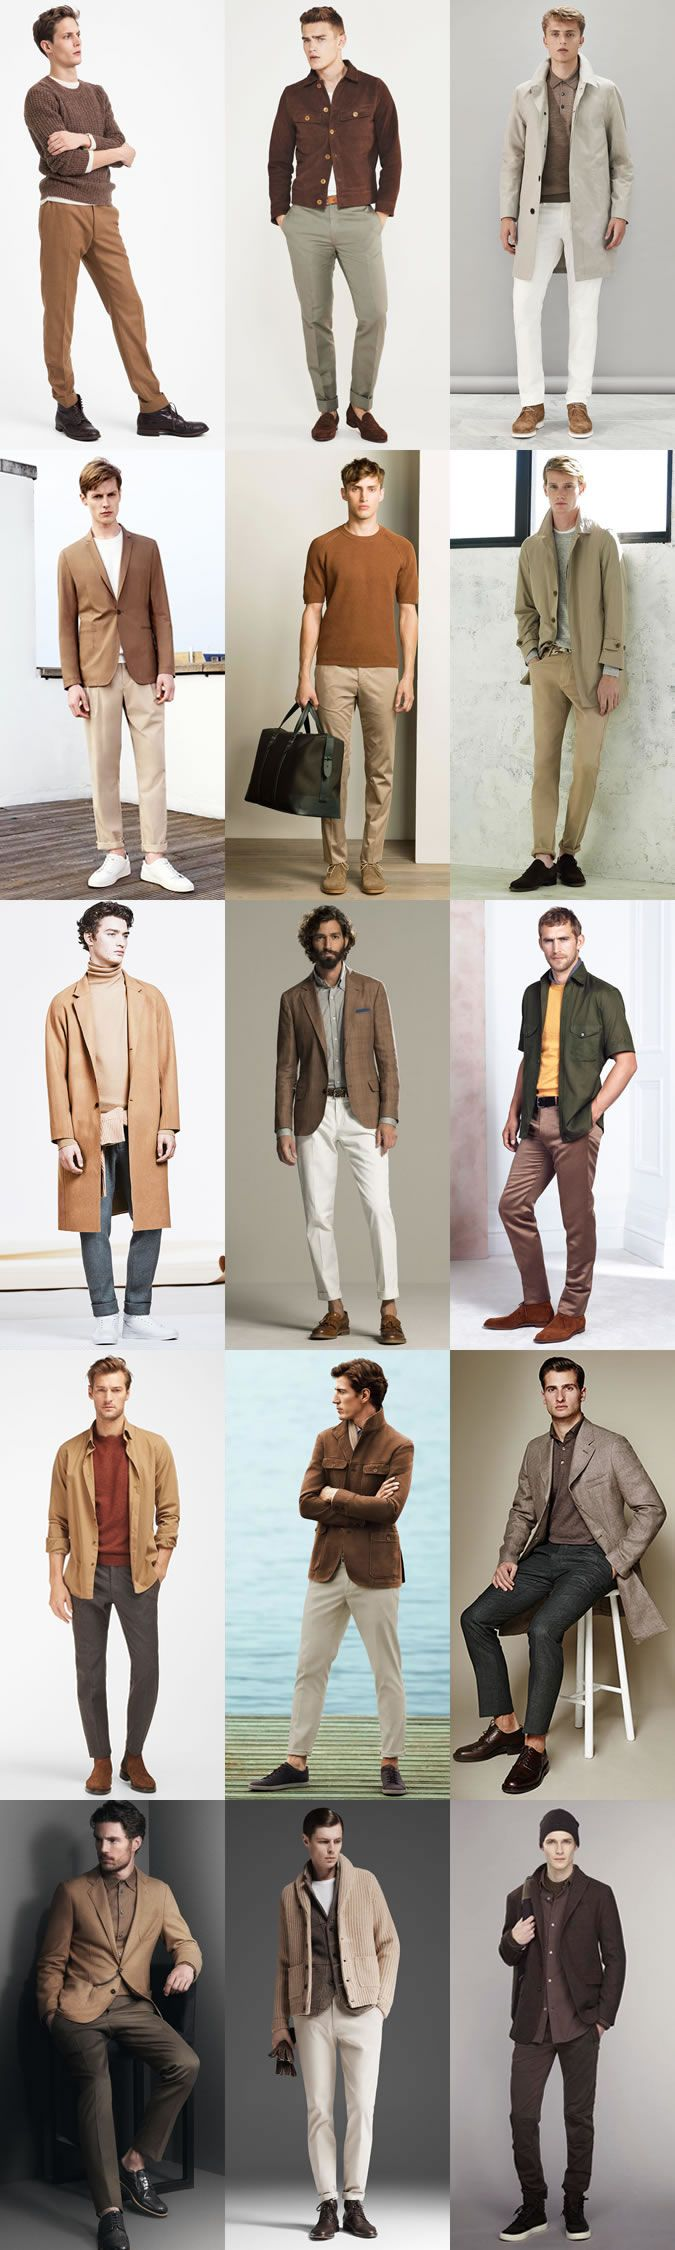 Men's Earth Tones Palette Outfit Inspiration Lookbook